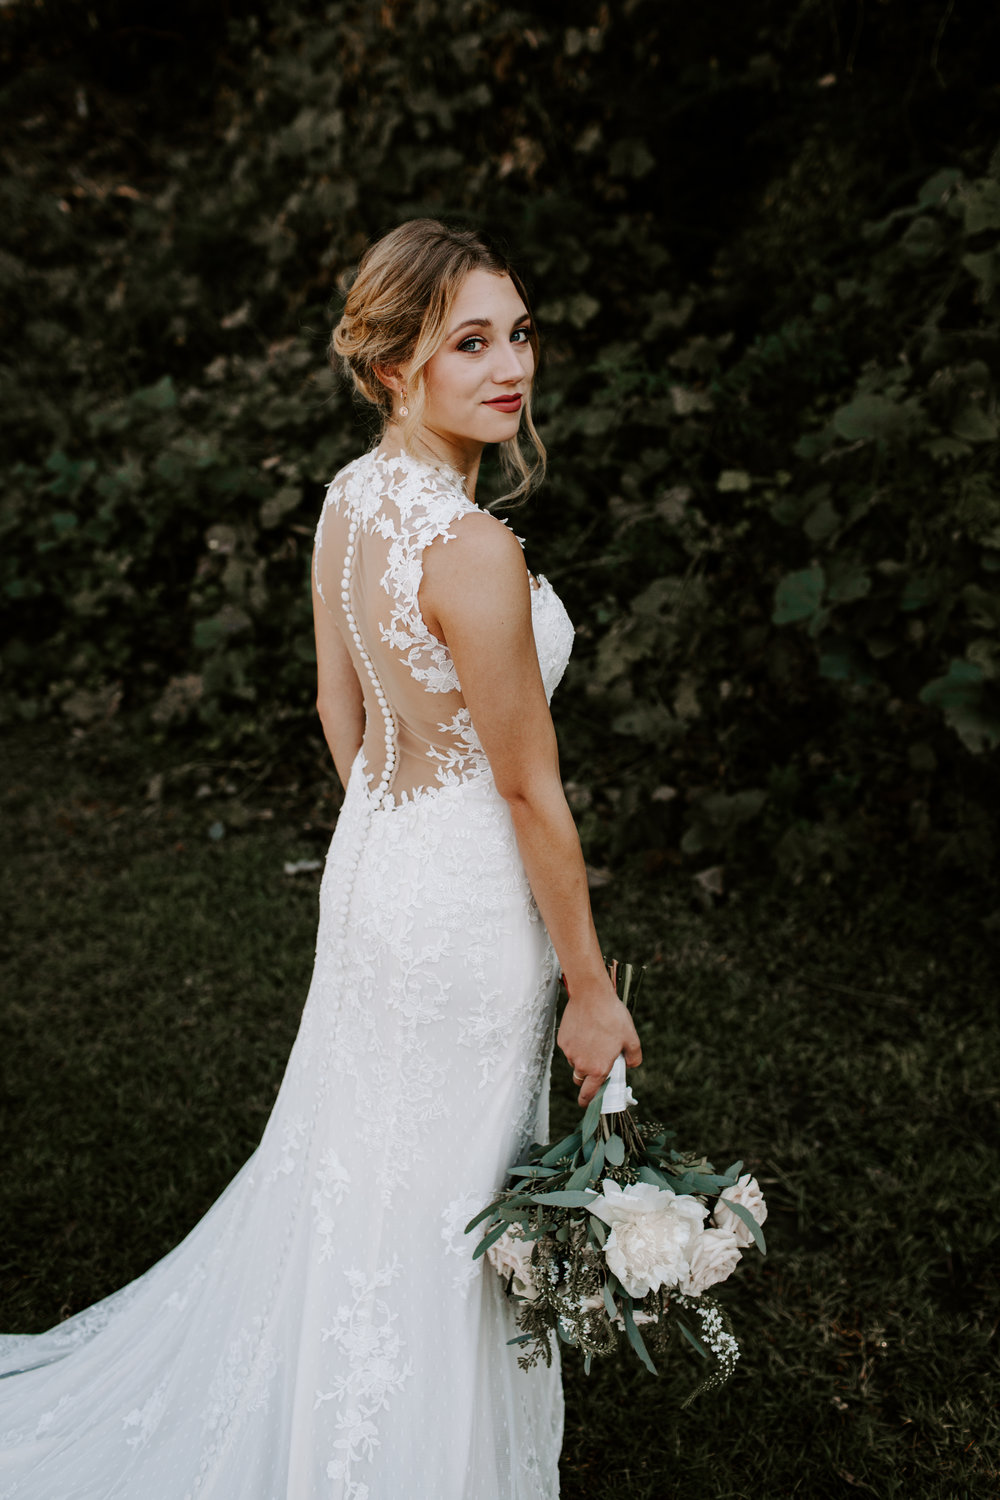 cailin+hails_destination_wedding_fairhope_daphne_mobile_alabama_madisonrylee_0072.jpg